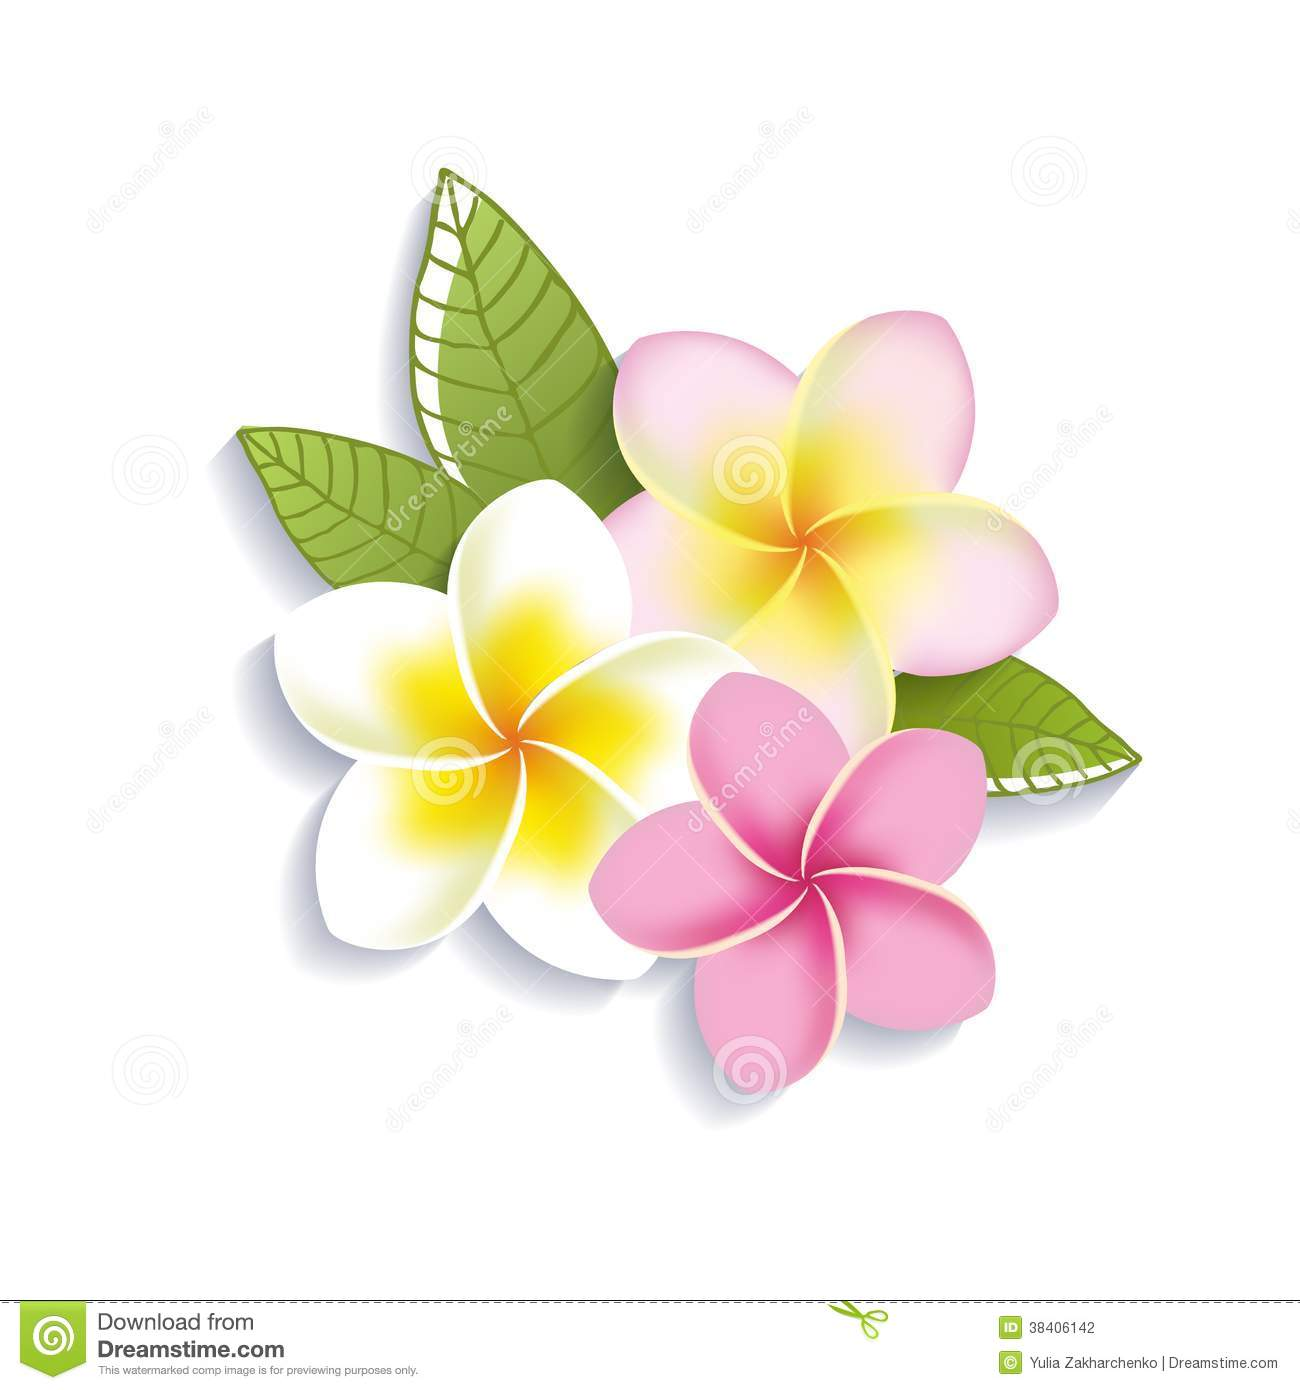 vector clipart flowers - photo #28